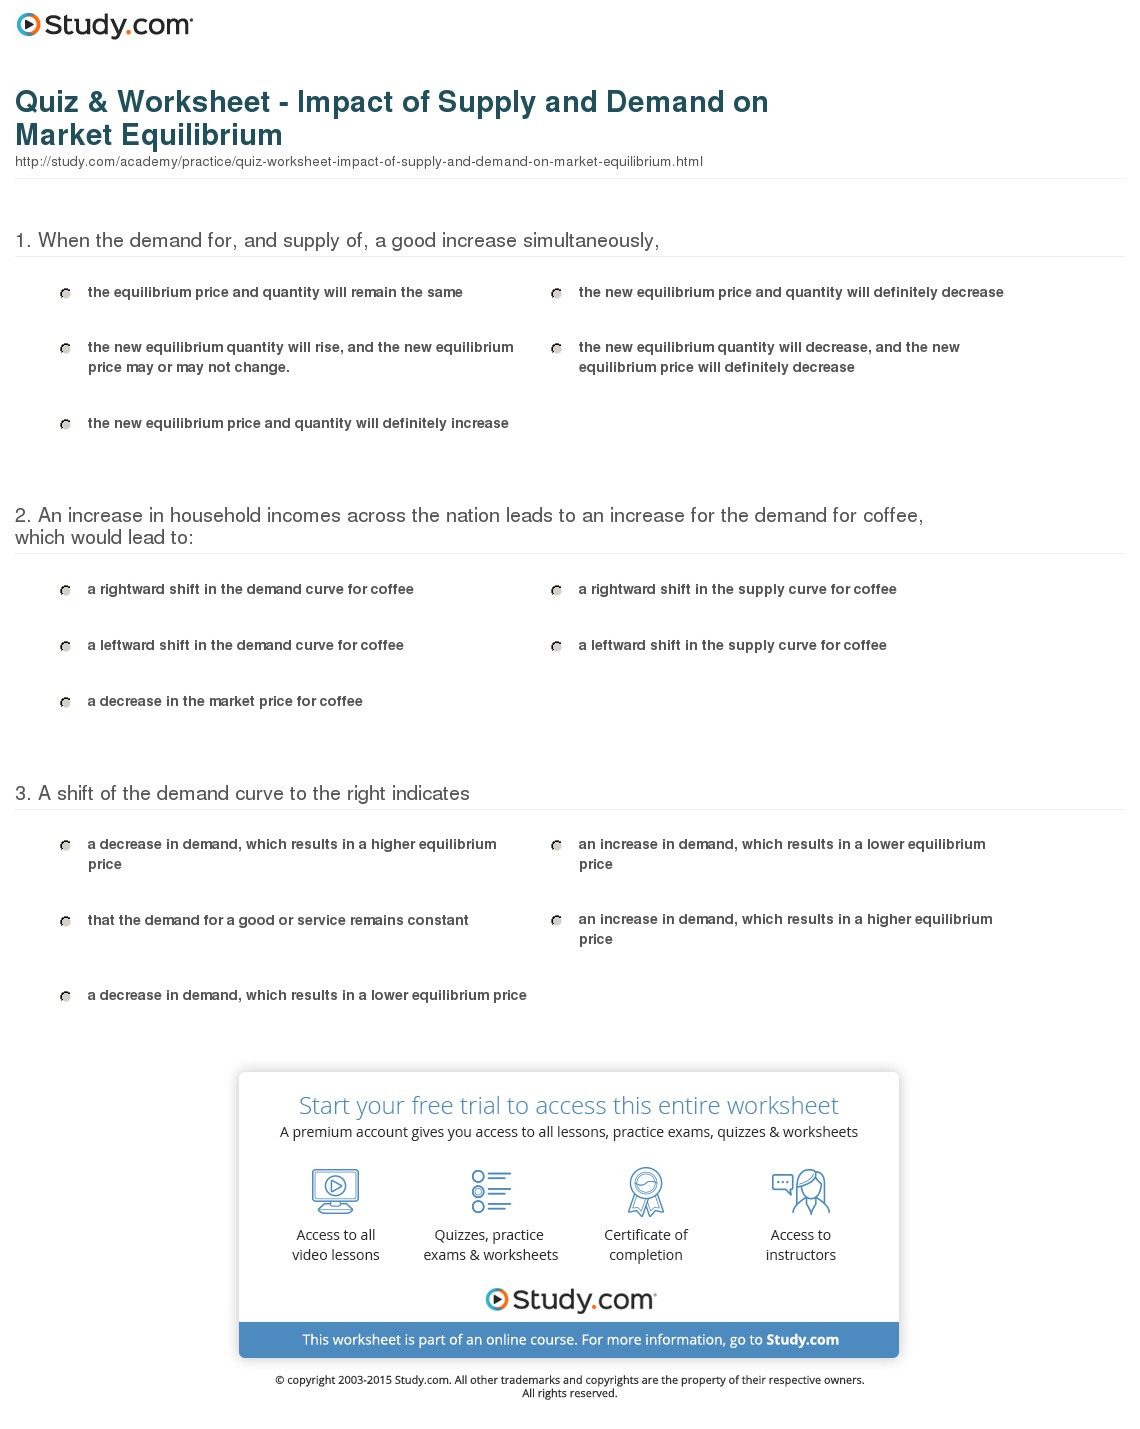 Quiz Worksheet Impact Of Supply And Demand On Market